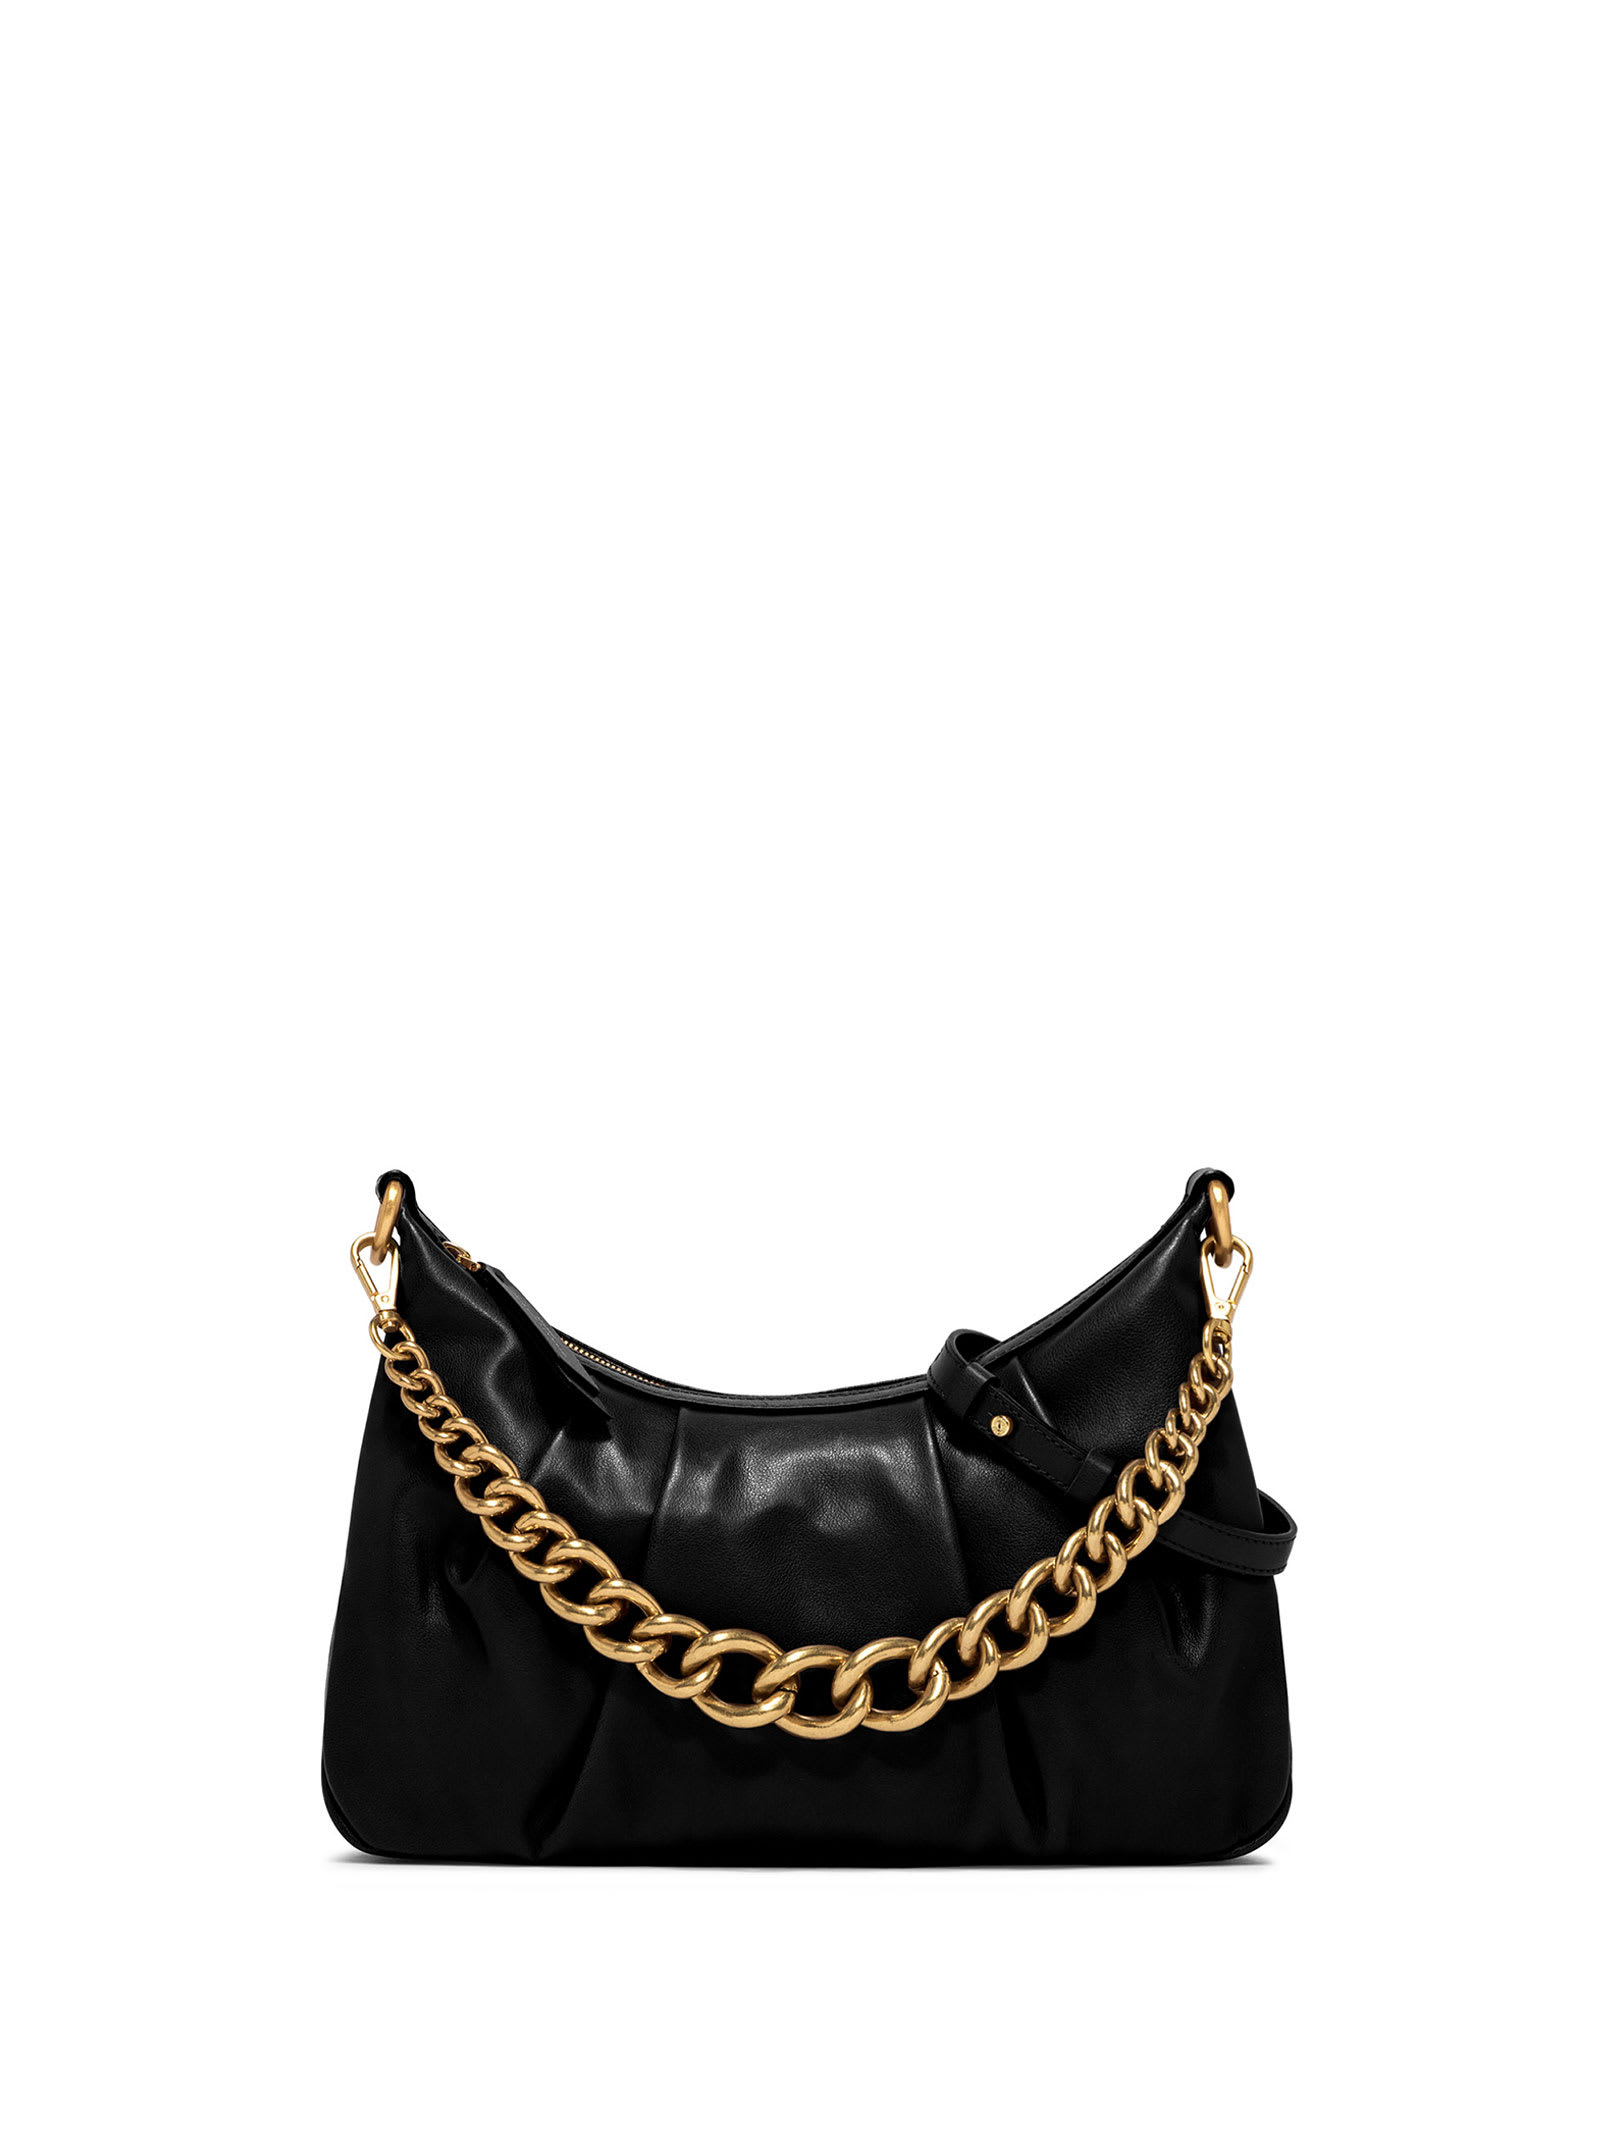 Leather Bag With Chain